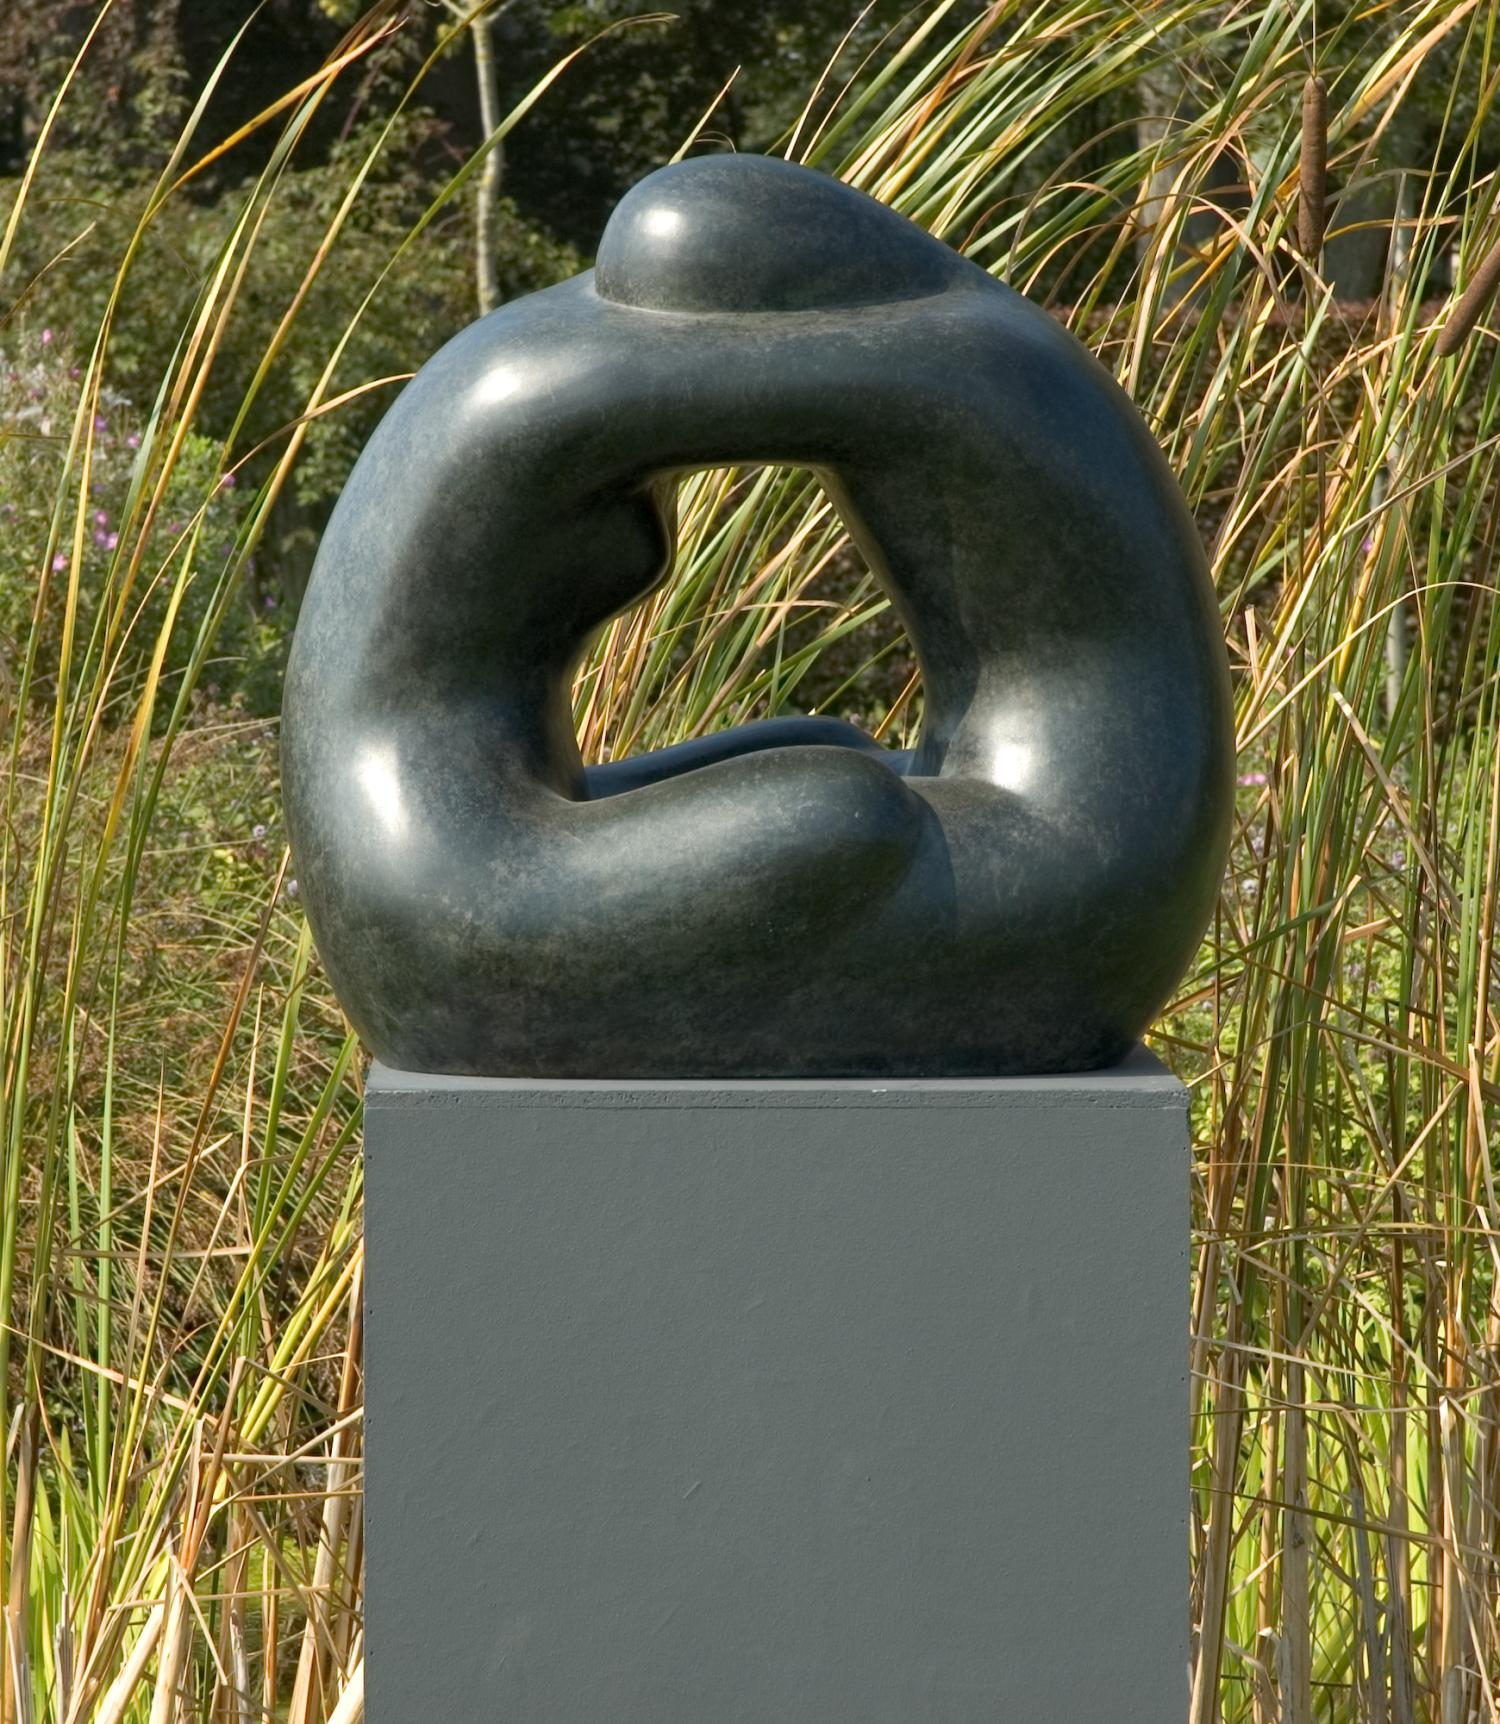 Lot 39 - Sculpture: Guy Buseyne, (born 1961), Samen, Bronze, Variegated green-brown patination, Foundry